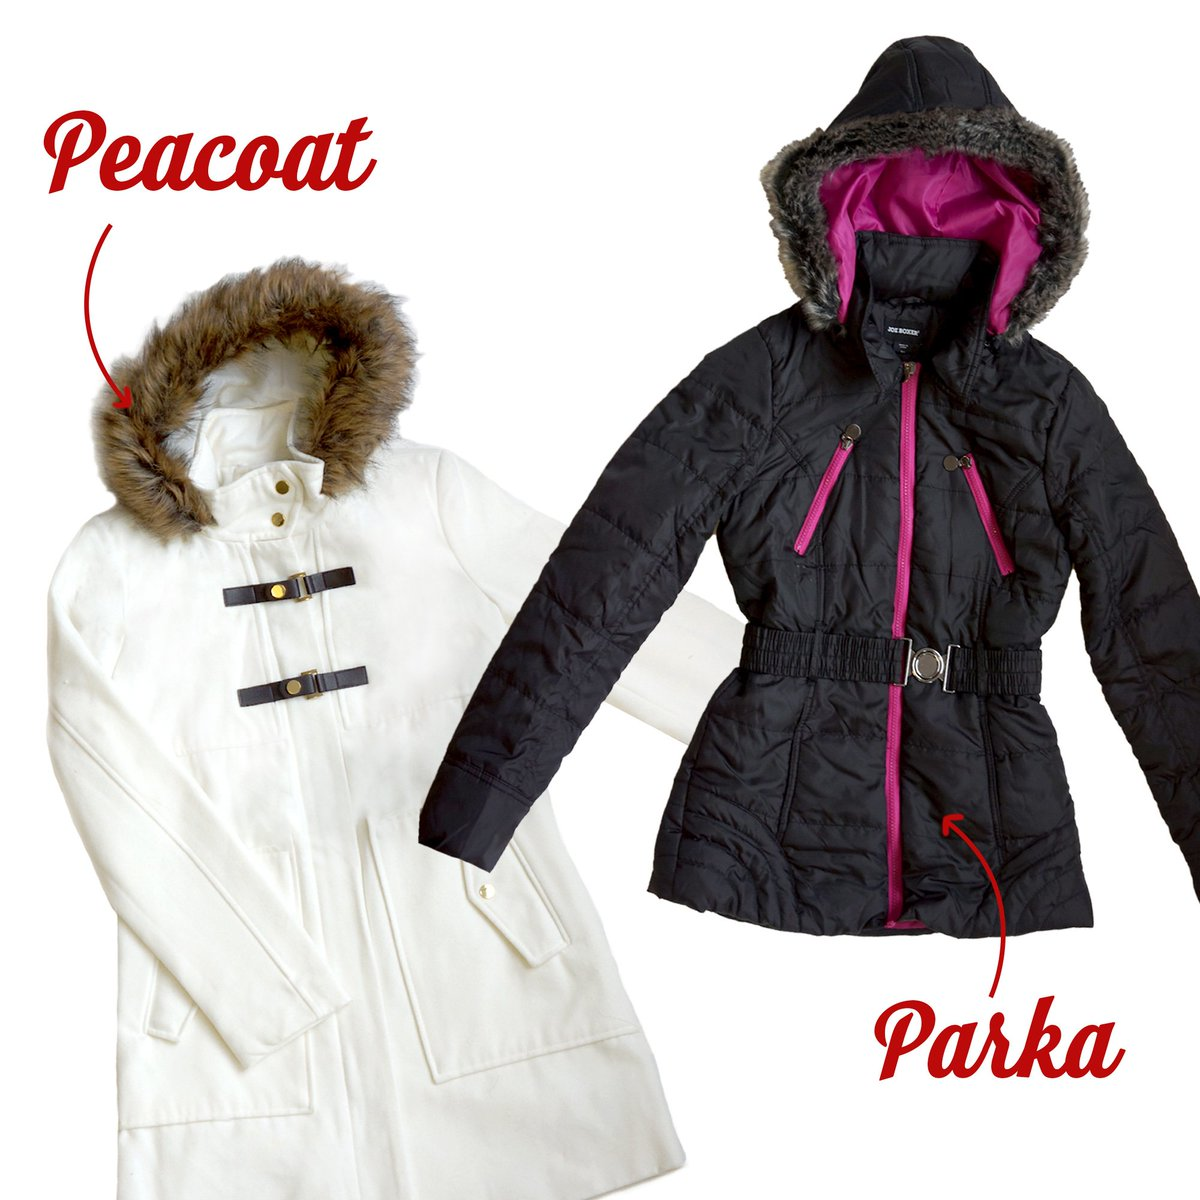 Parkas vs. Peacoats. What's your winter coat choice? #ThisOrThat https://t.co/qSzu5IWTK4